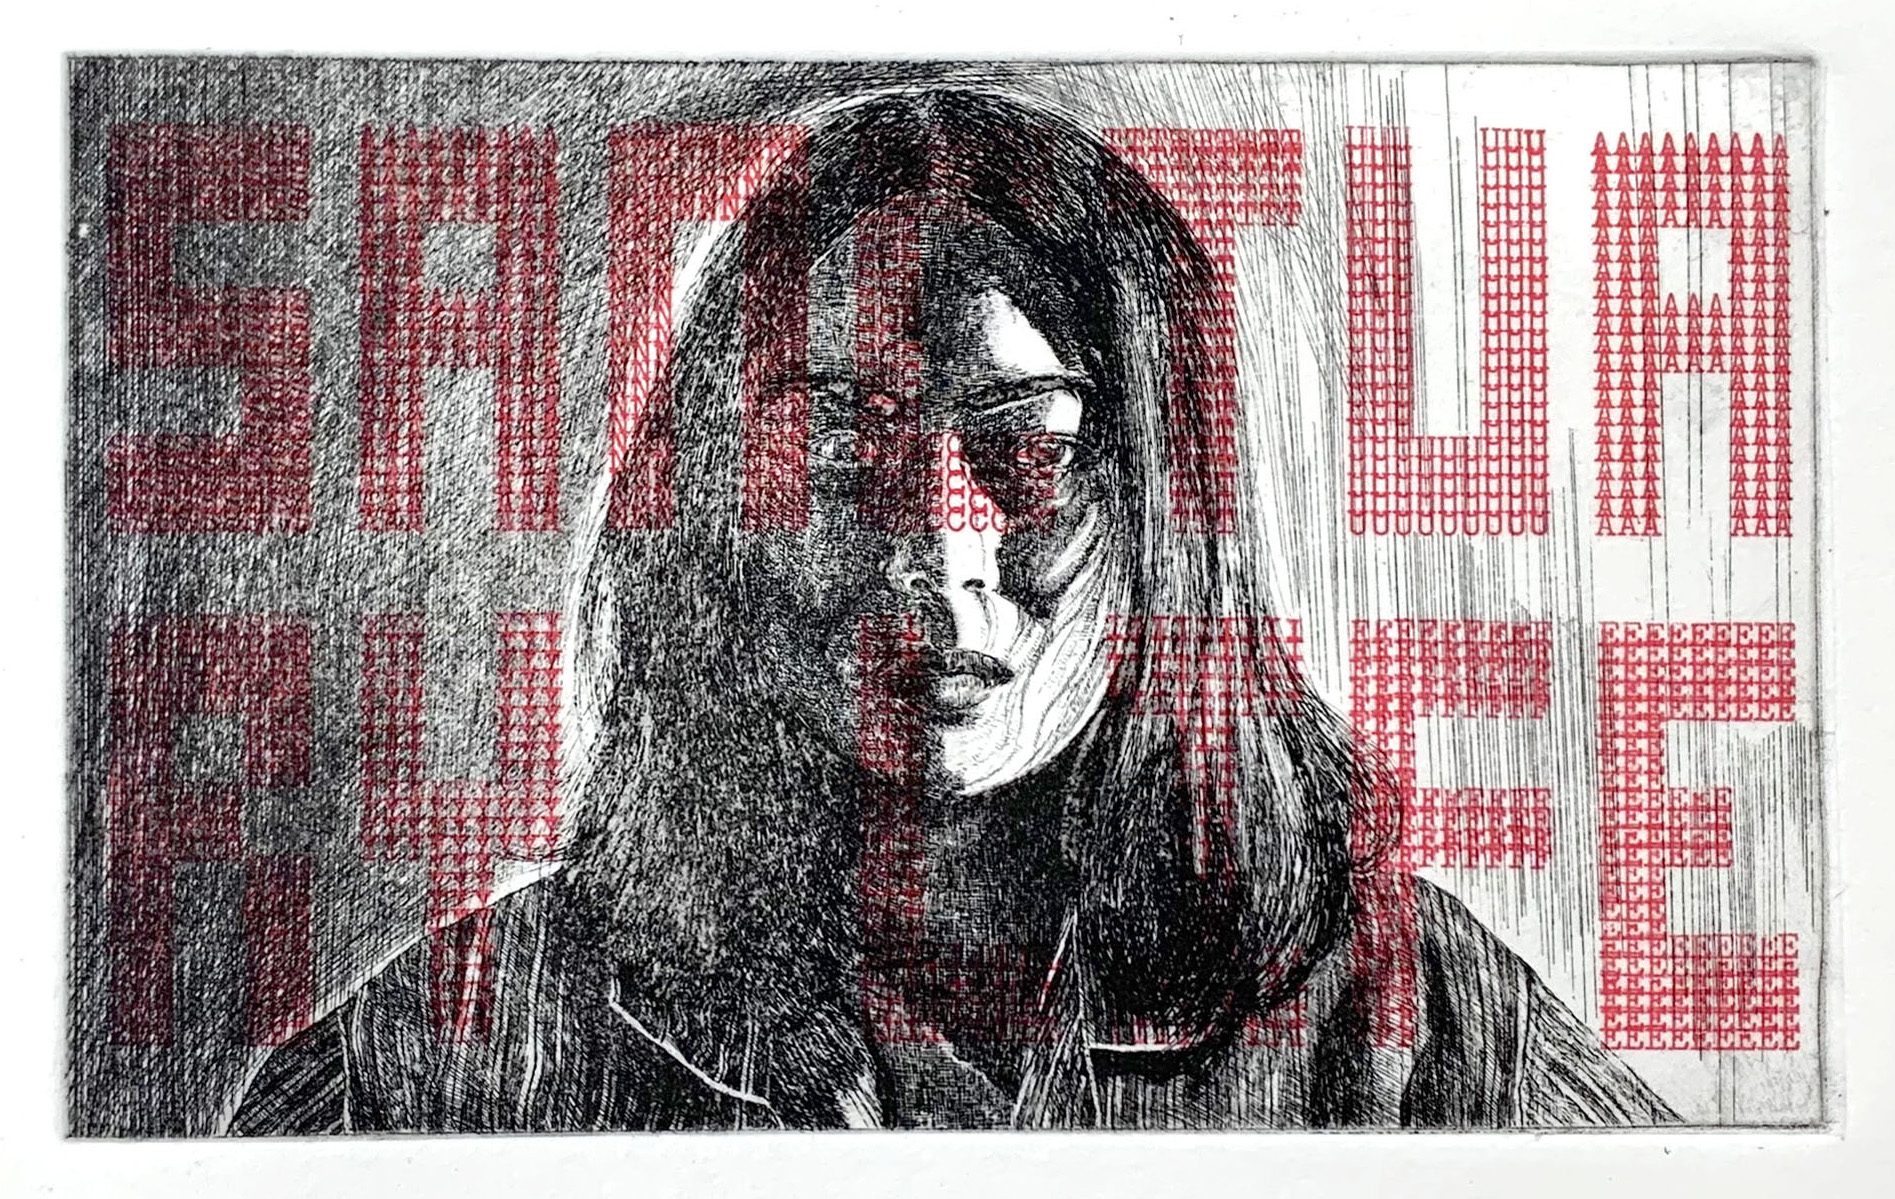 SANCTUARY LIFE, 2018, Intaglio Printmaking with Typewriter Drawing Chine-Colle, 11 x 7 inches